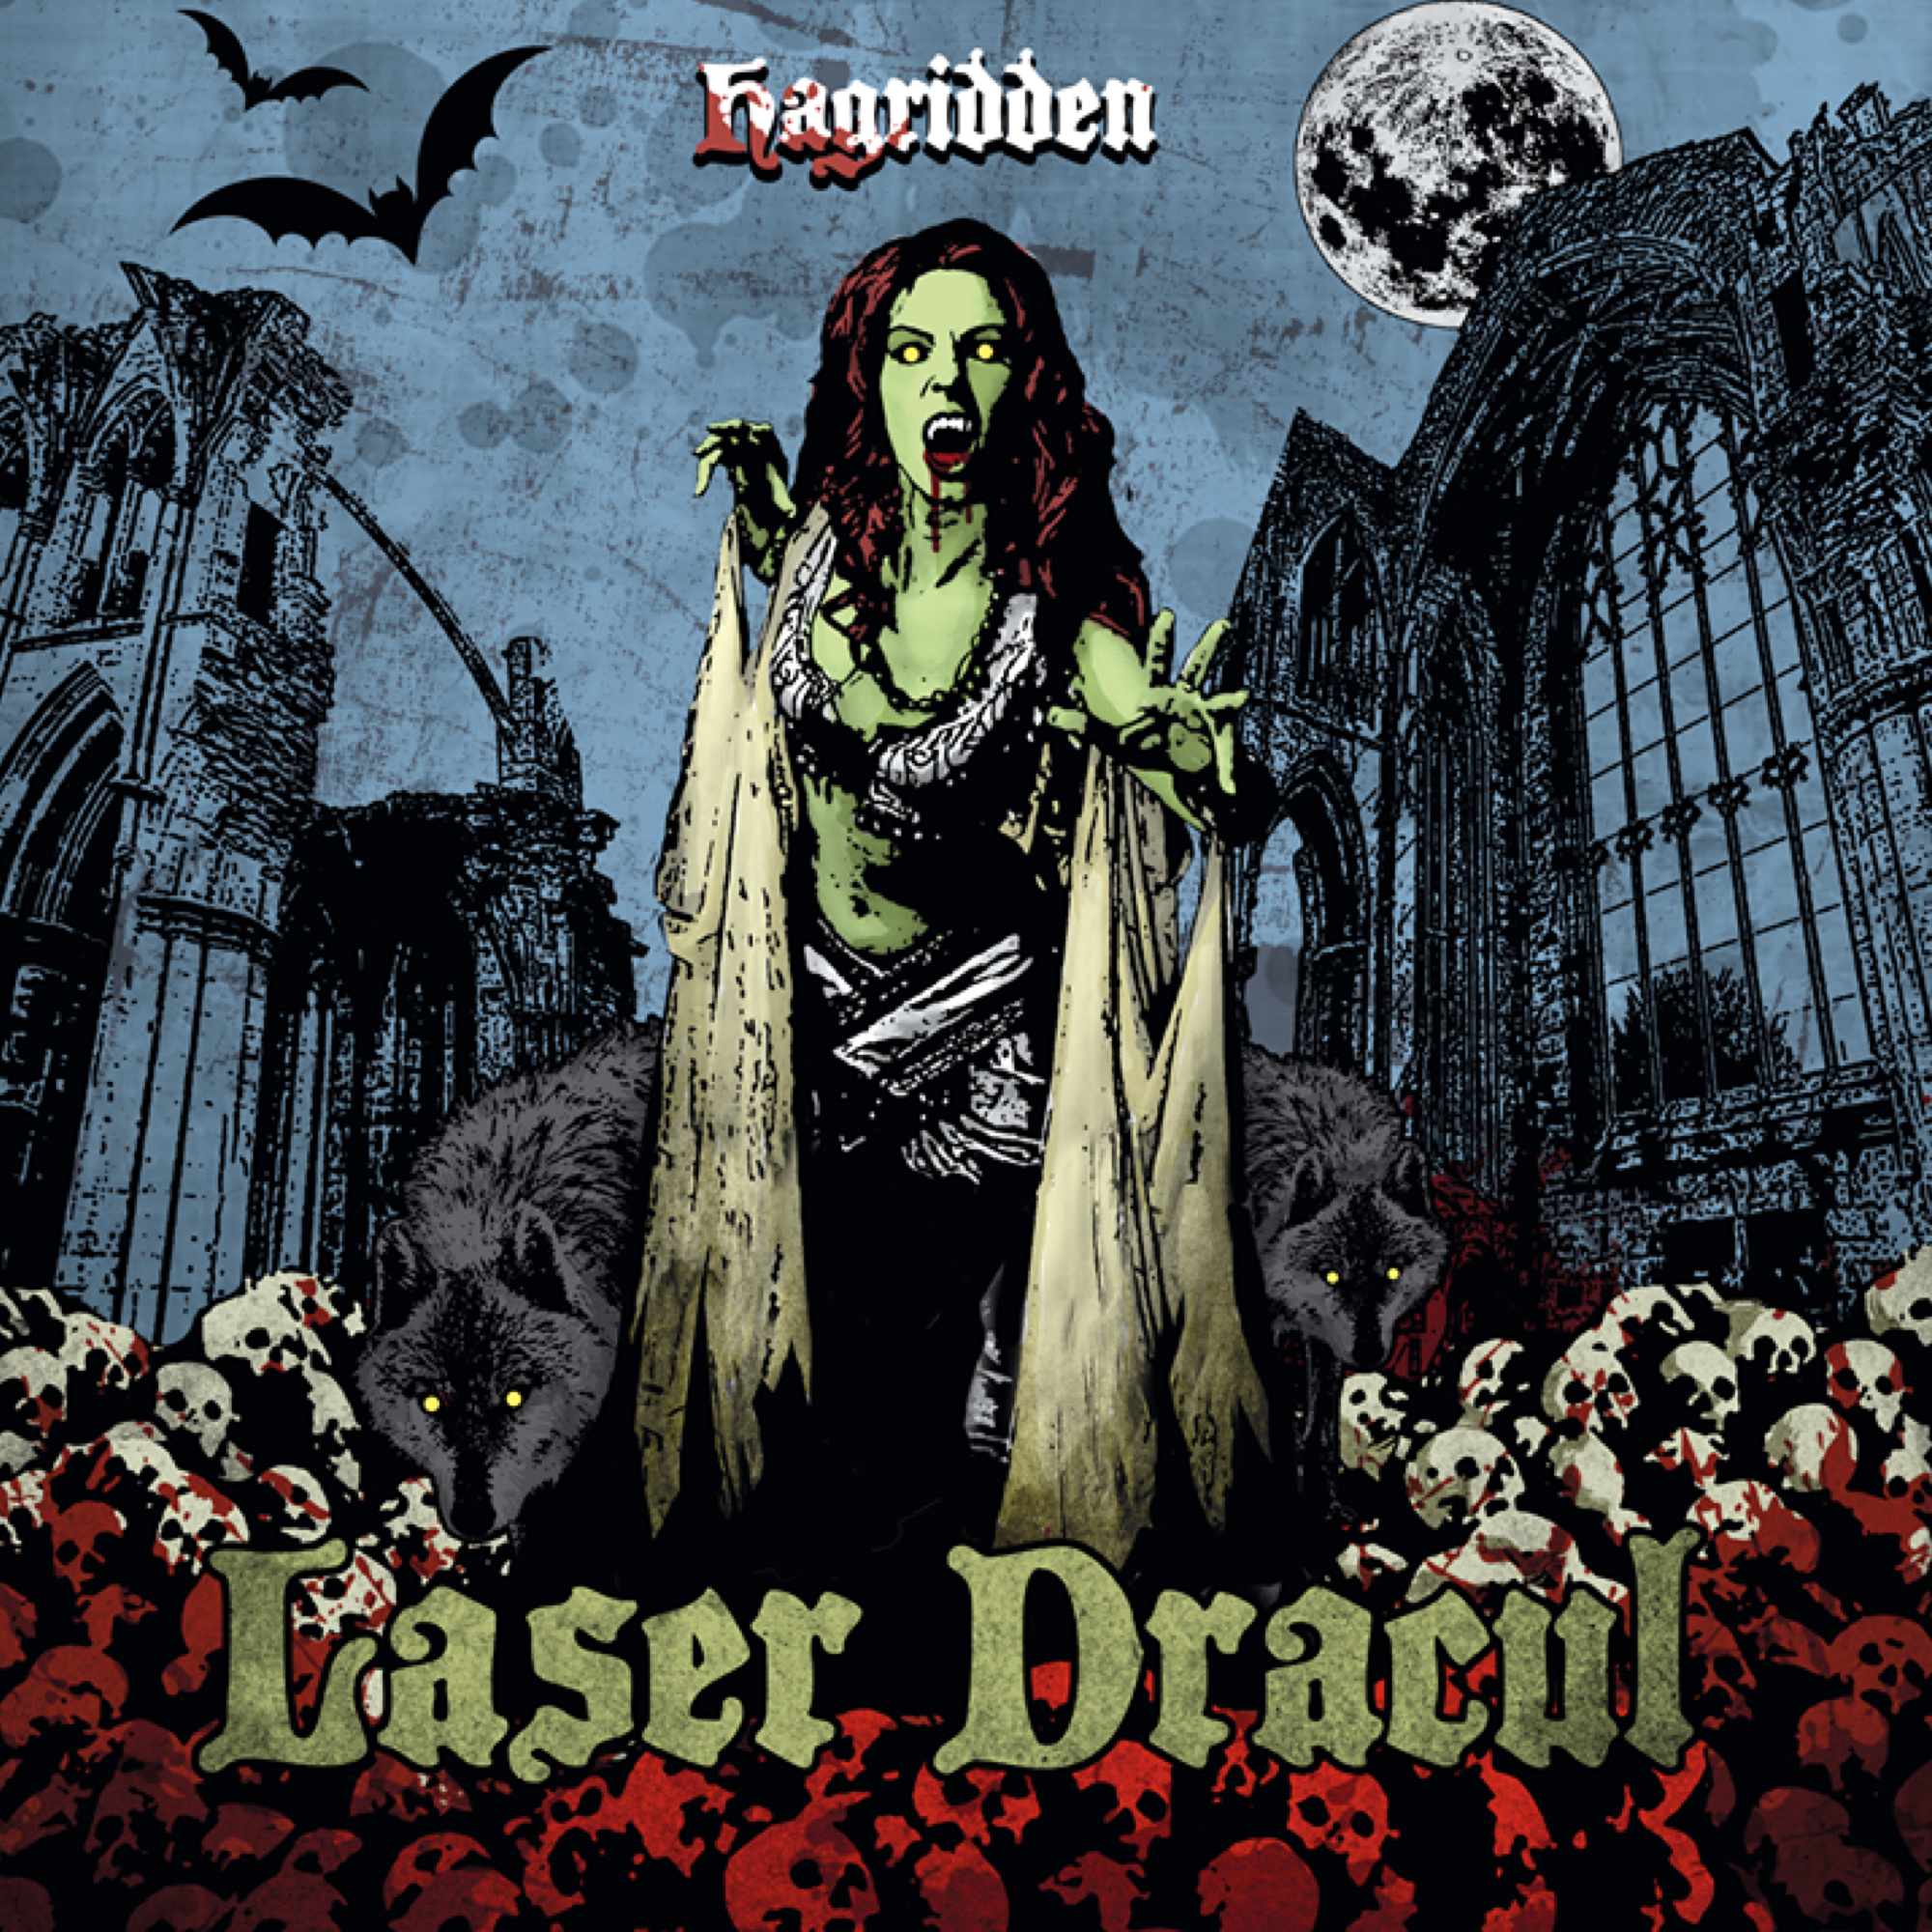 All Hail the Return of Swedish Sleaze Merchants LASER DRACUL /// New Album Out this September on MAJESTIC MOUNTAIN RECORDS